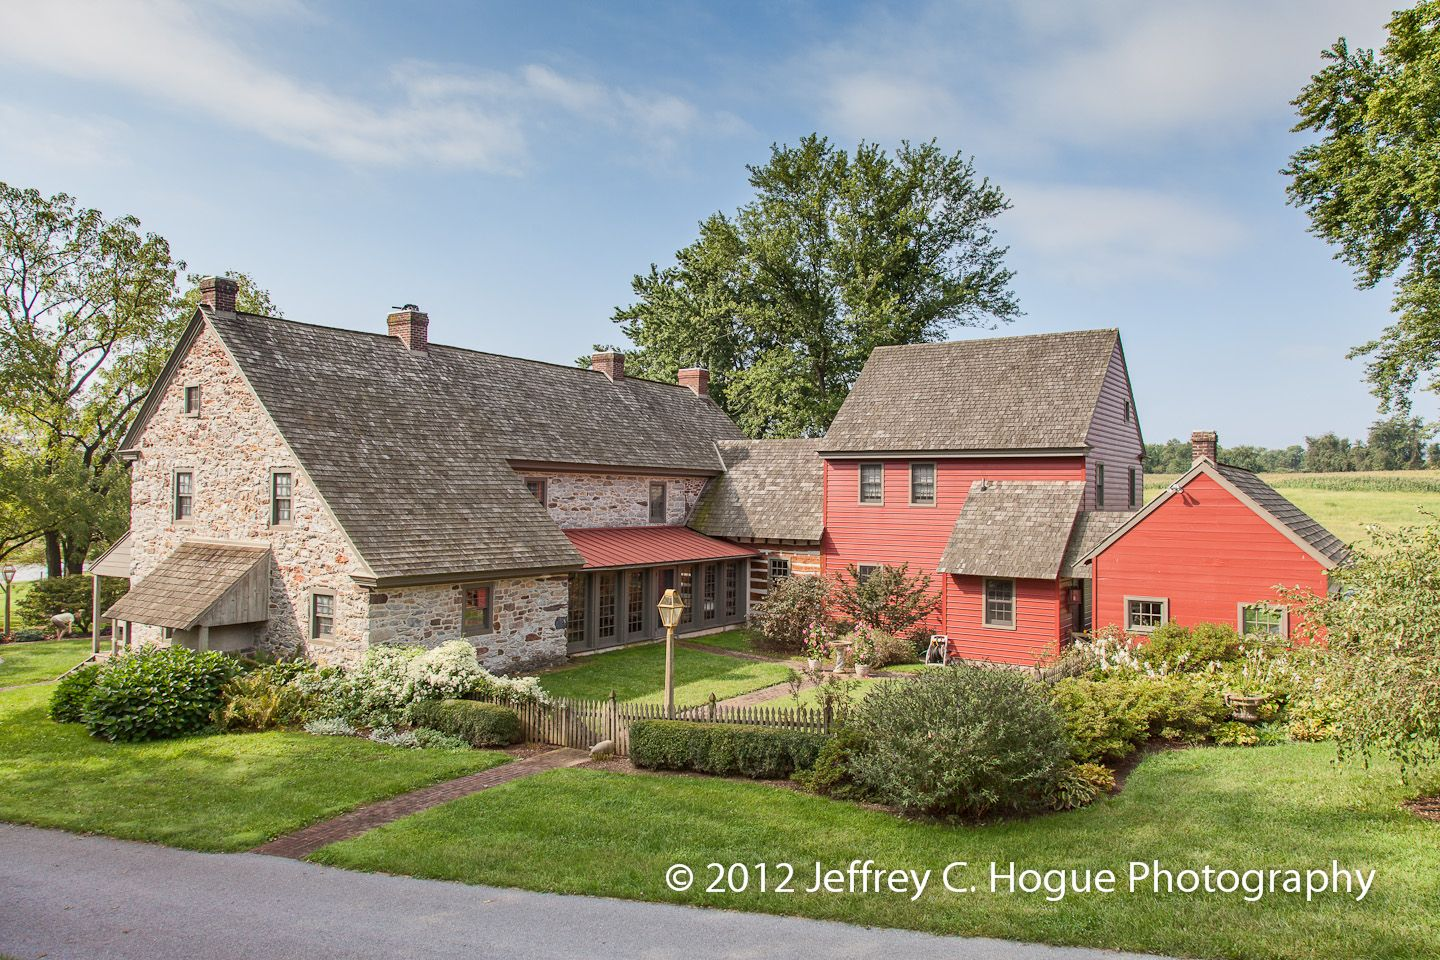 Great Berks County Farmhouse Located In The Rich Oley Valley For Sale At Jeffreyhoguerealtor Com Farmhouse Exterior Colonial Farmhouse Farmhouse Landscaping